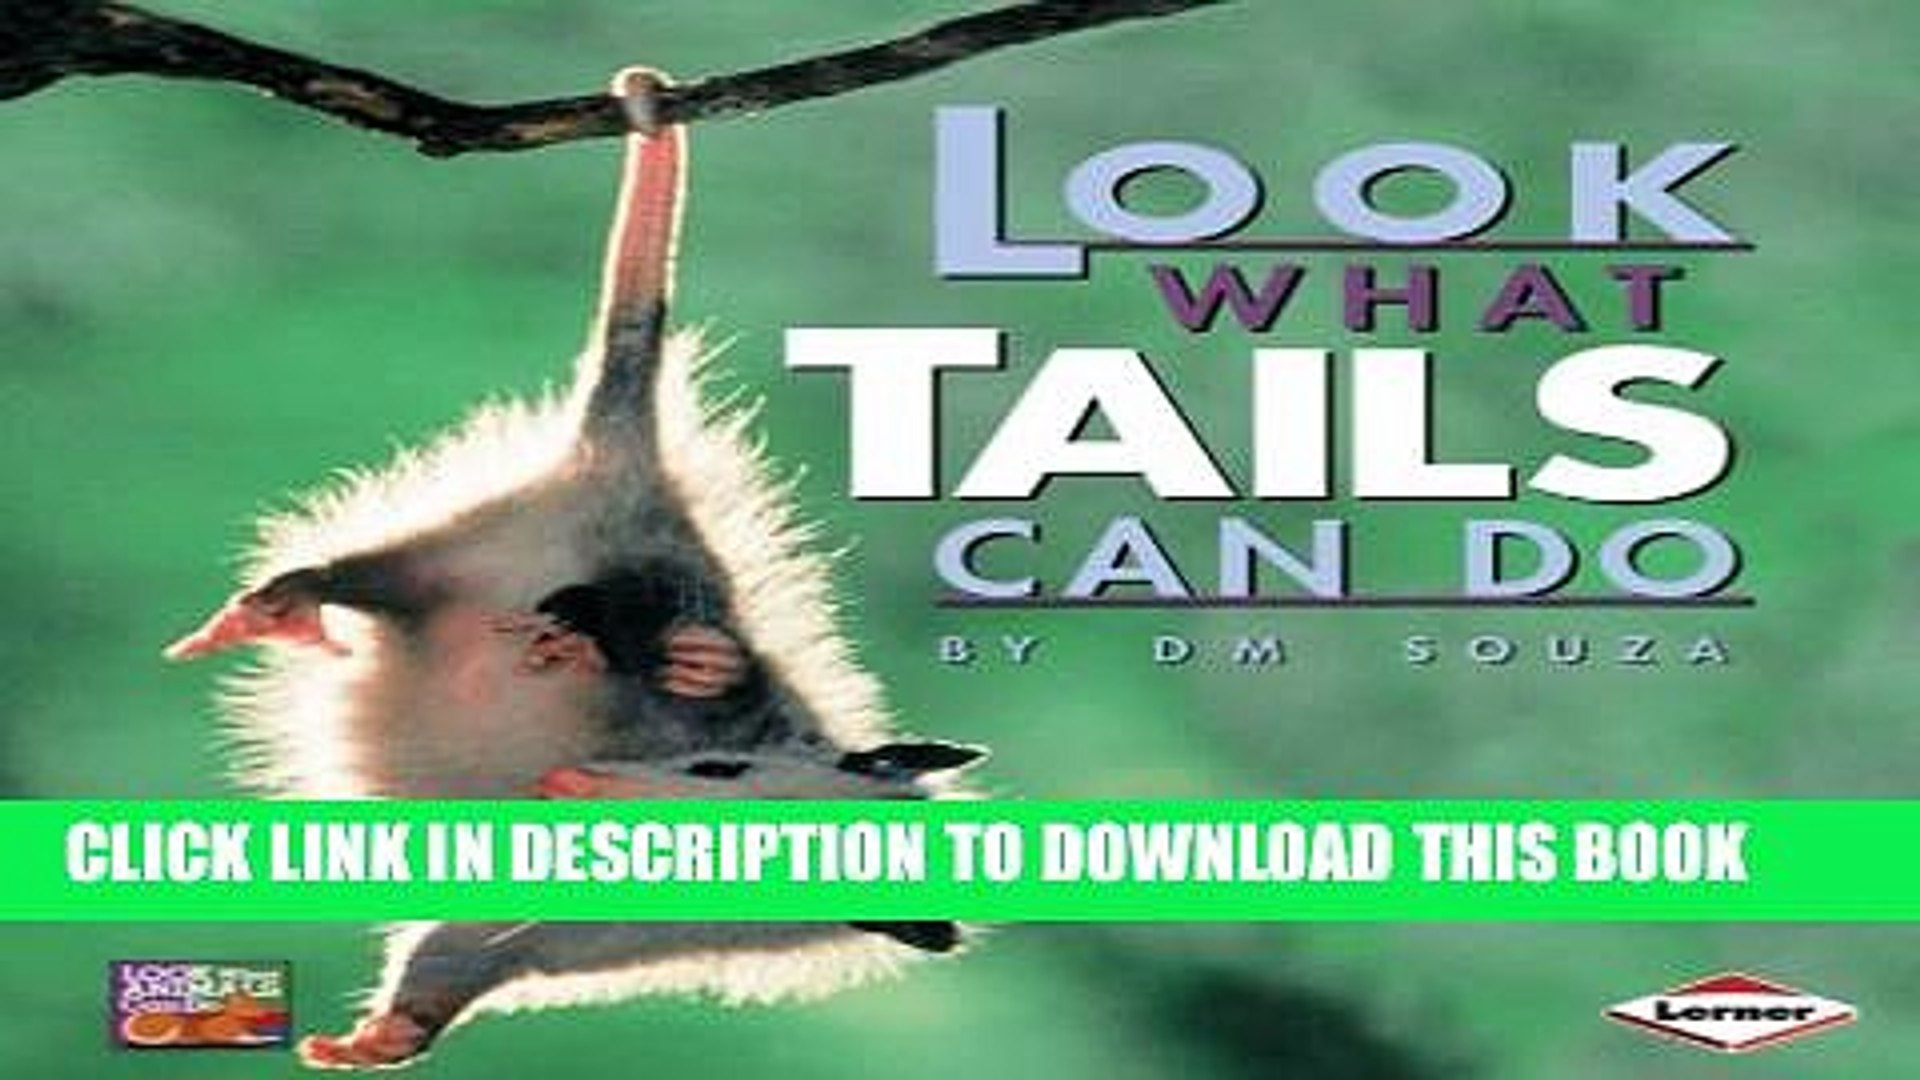 [PDF] Look What Tails Can Do (Look What Animlas Can Do) Full Online